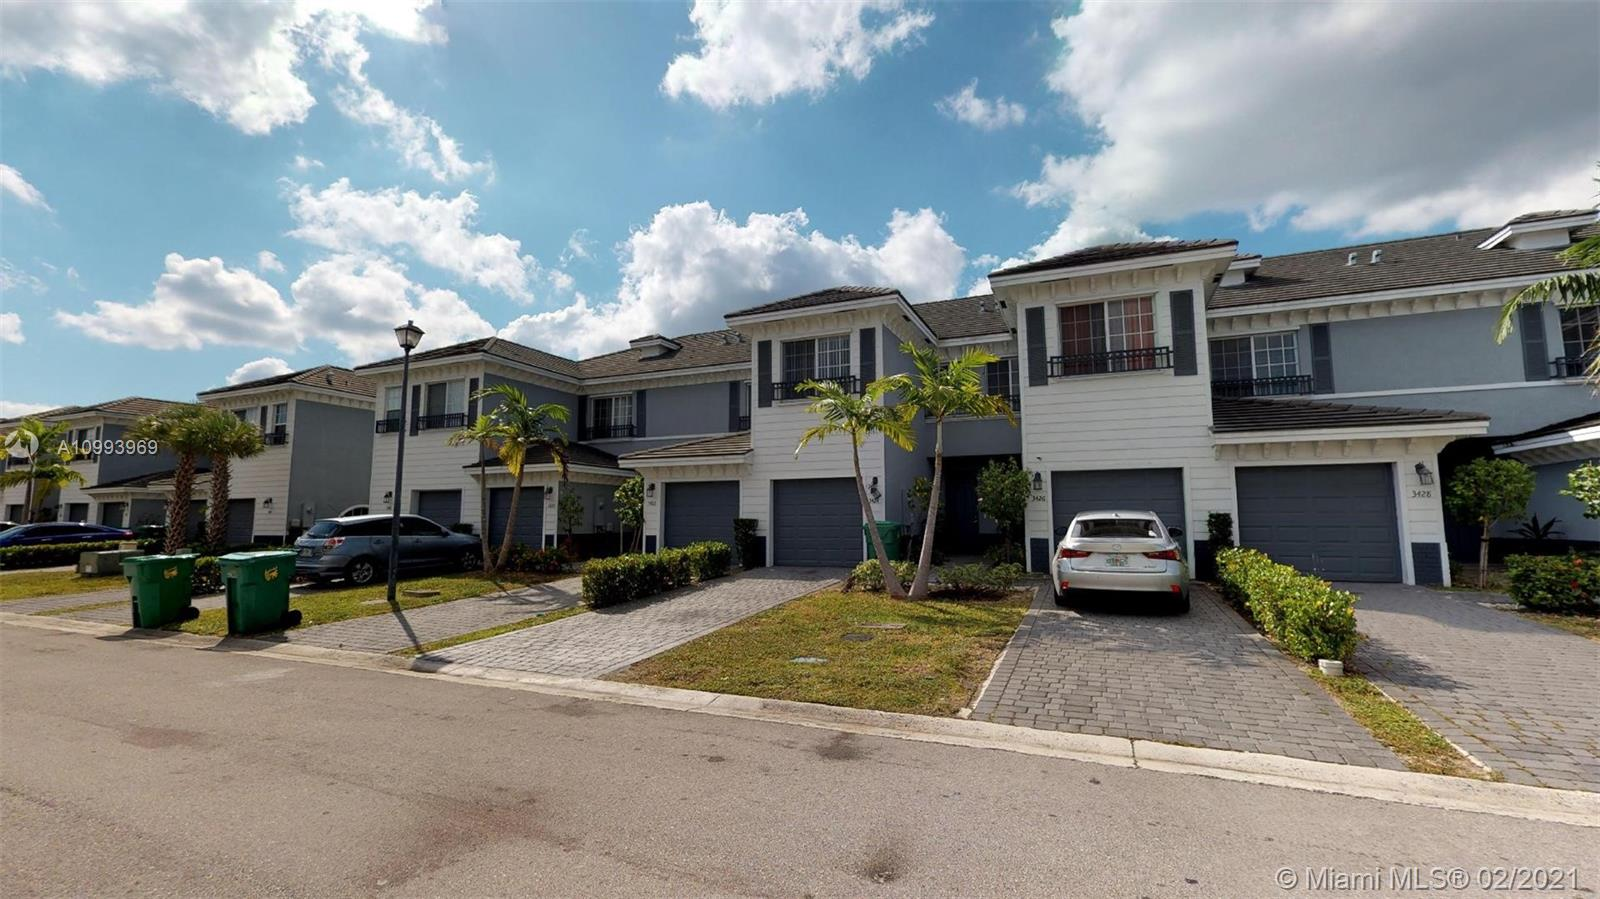 Gorgeous gated community located 20 minutes away from Ft Lauderdale Airport, between the Atlantic Ocean and Sawgrass Mills Mall. Town home with innovative design and high quality finishes. Unit feature Italian designed cabinetry, stainless steel appliances and porcelain marble flooring. Unit is looking over the lake. Community swimming pool and also close to beautiful park with access to tennis courts, cricket pitch, baseball field, basketball court.  rented for $1,770 monthly, lease expire on 07/01/21.